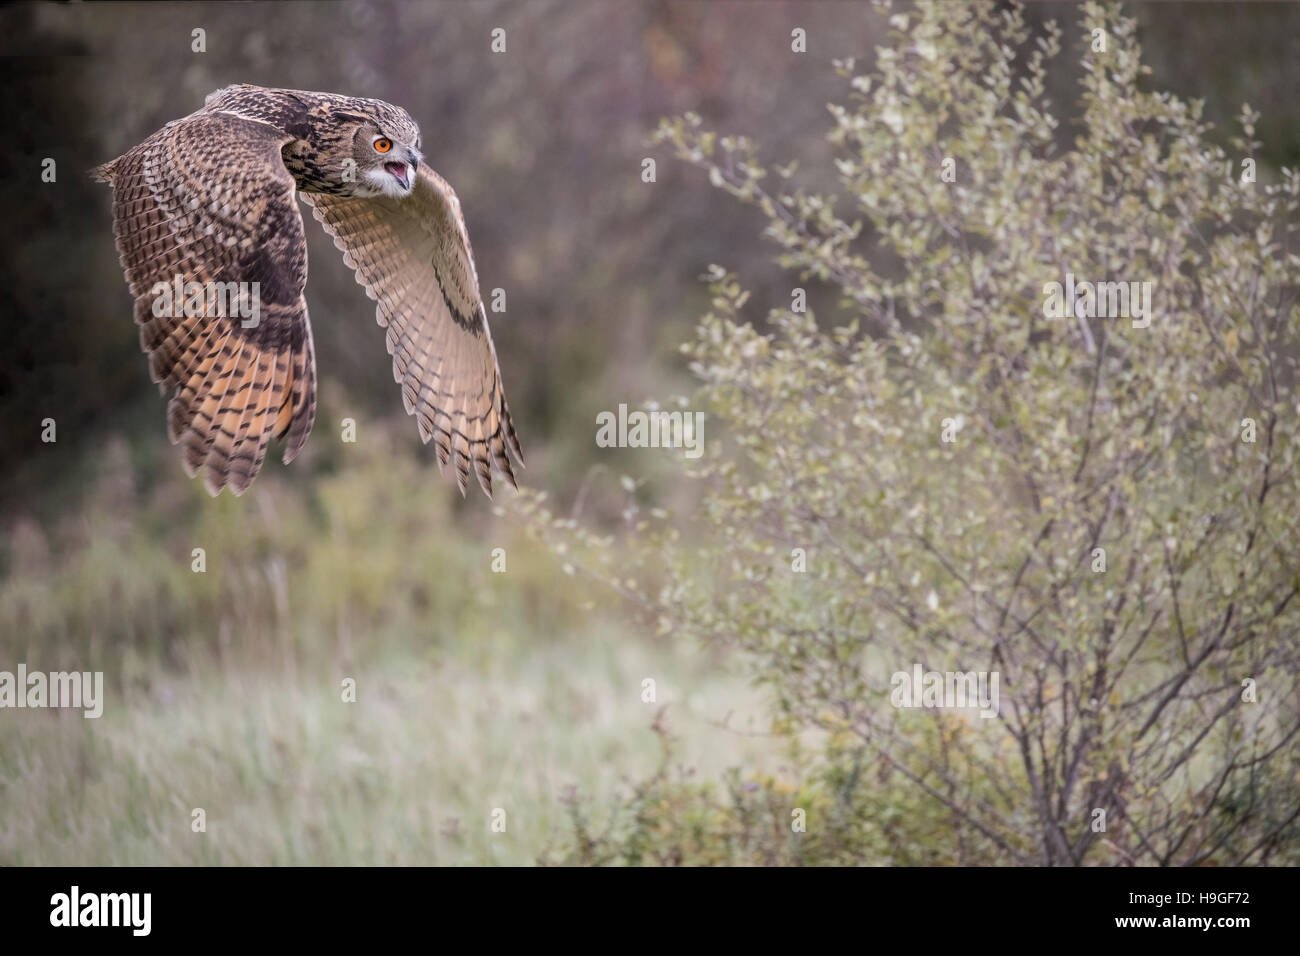 Great Horned Owl - Stock Image